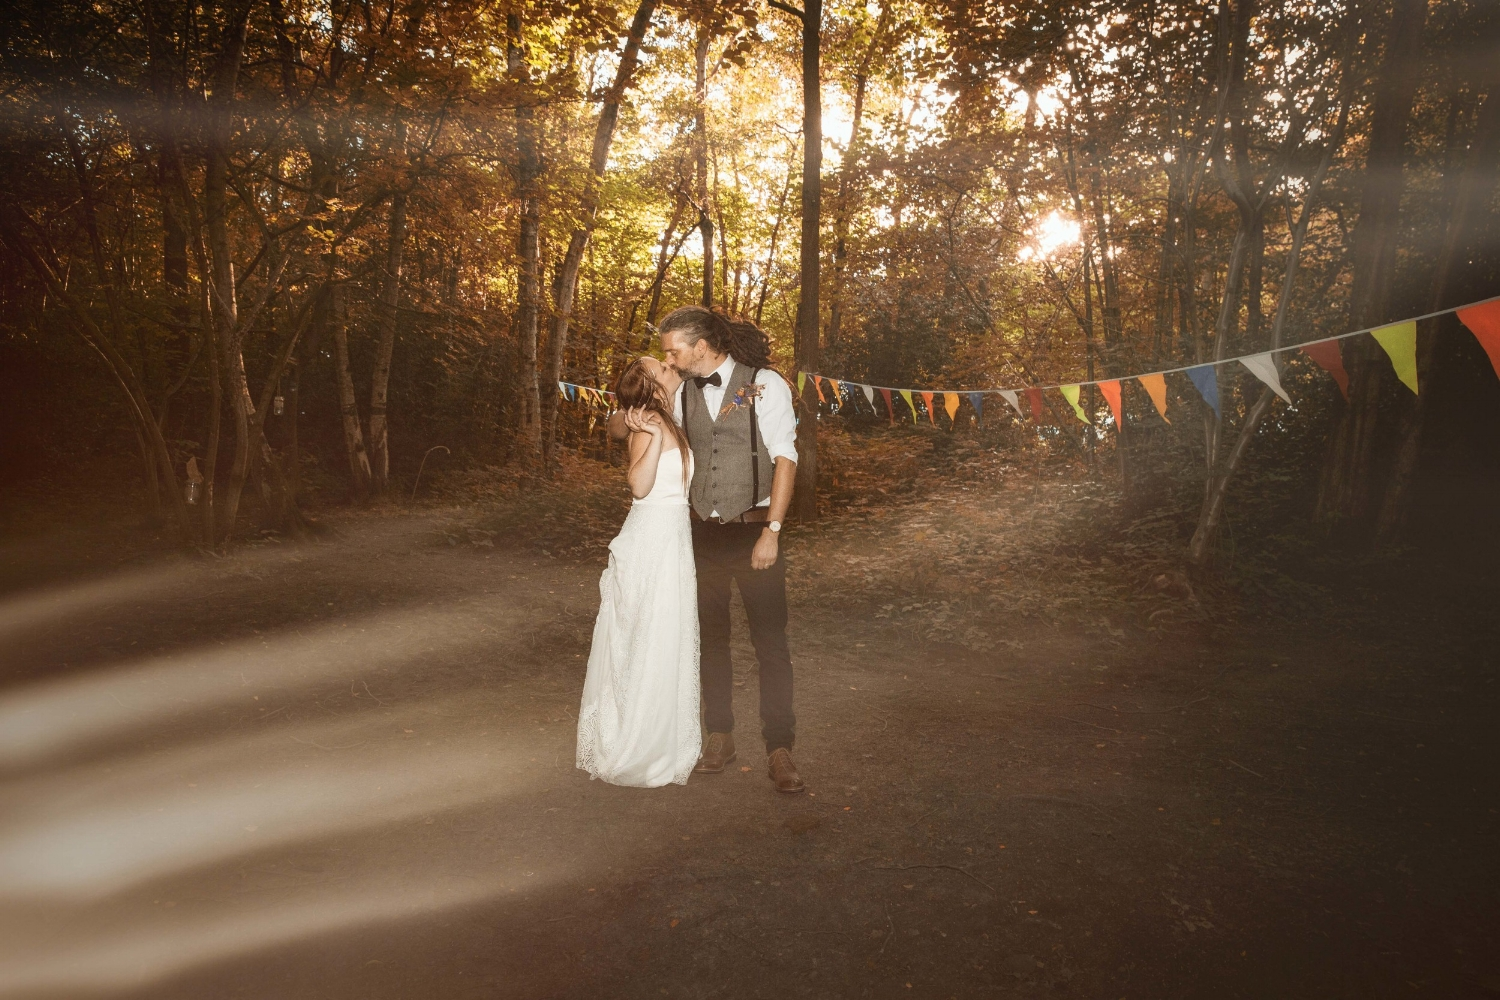 Wayne Hudson Photography, Lucria Creative, Cornwall and Devon wedding photographer based in Launceston